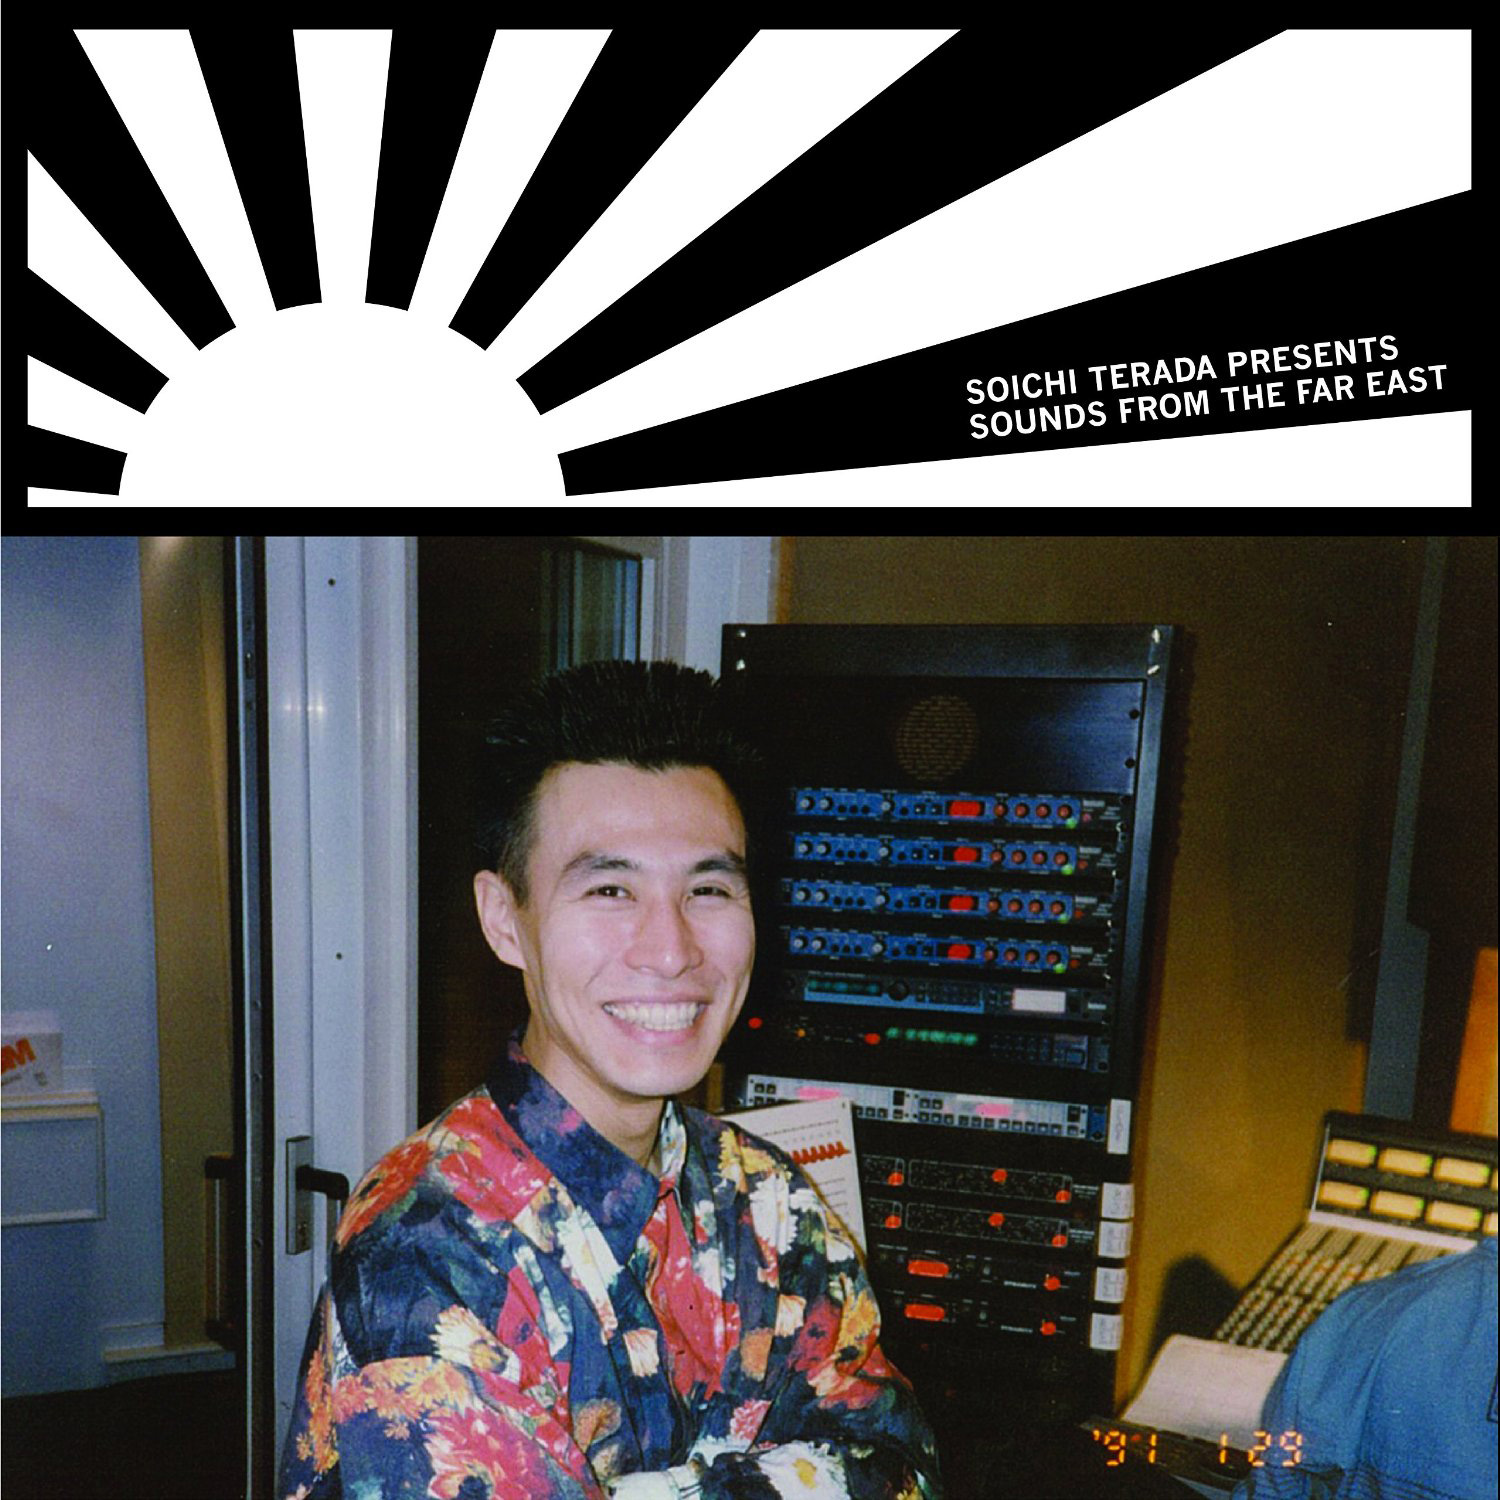 19 Soichi Tekada - Sounds from the Far East